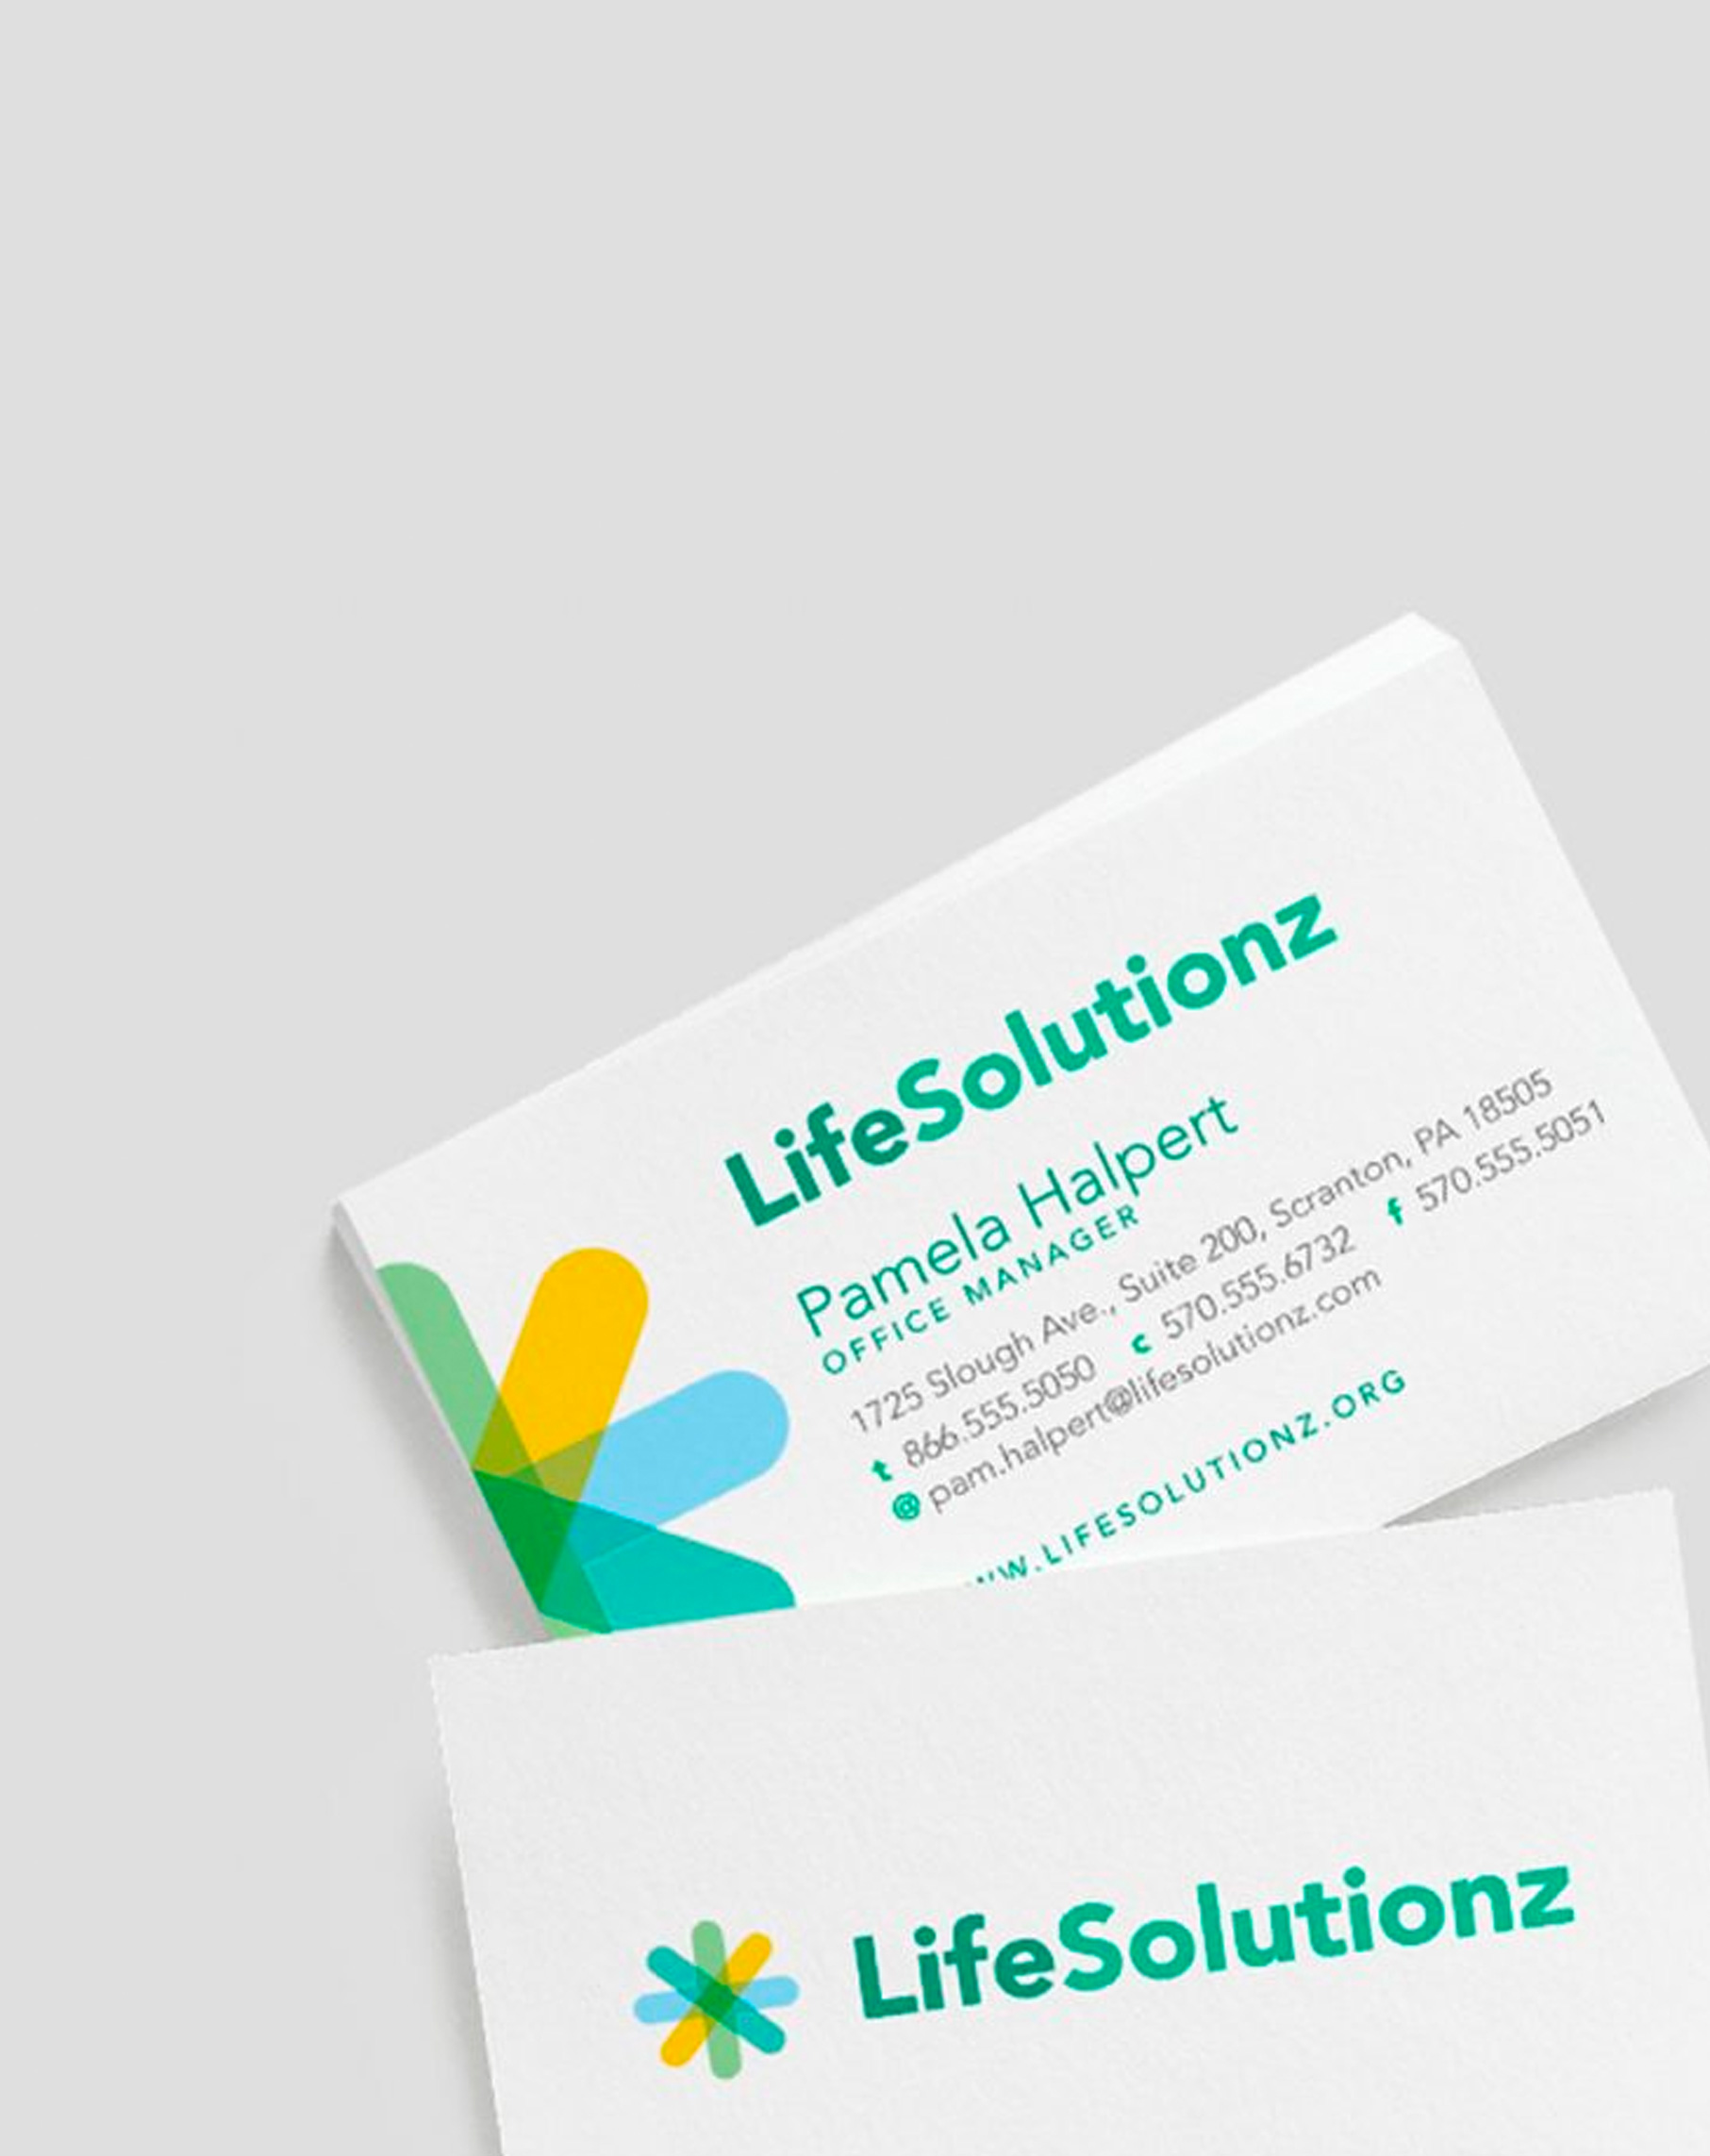 LifeSolutionz